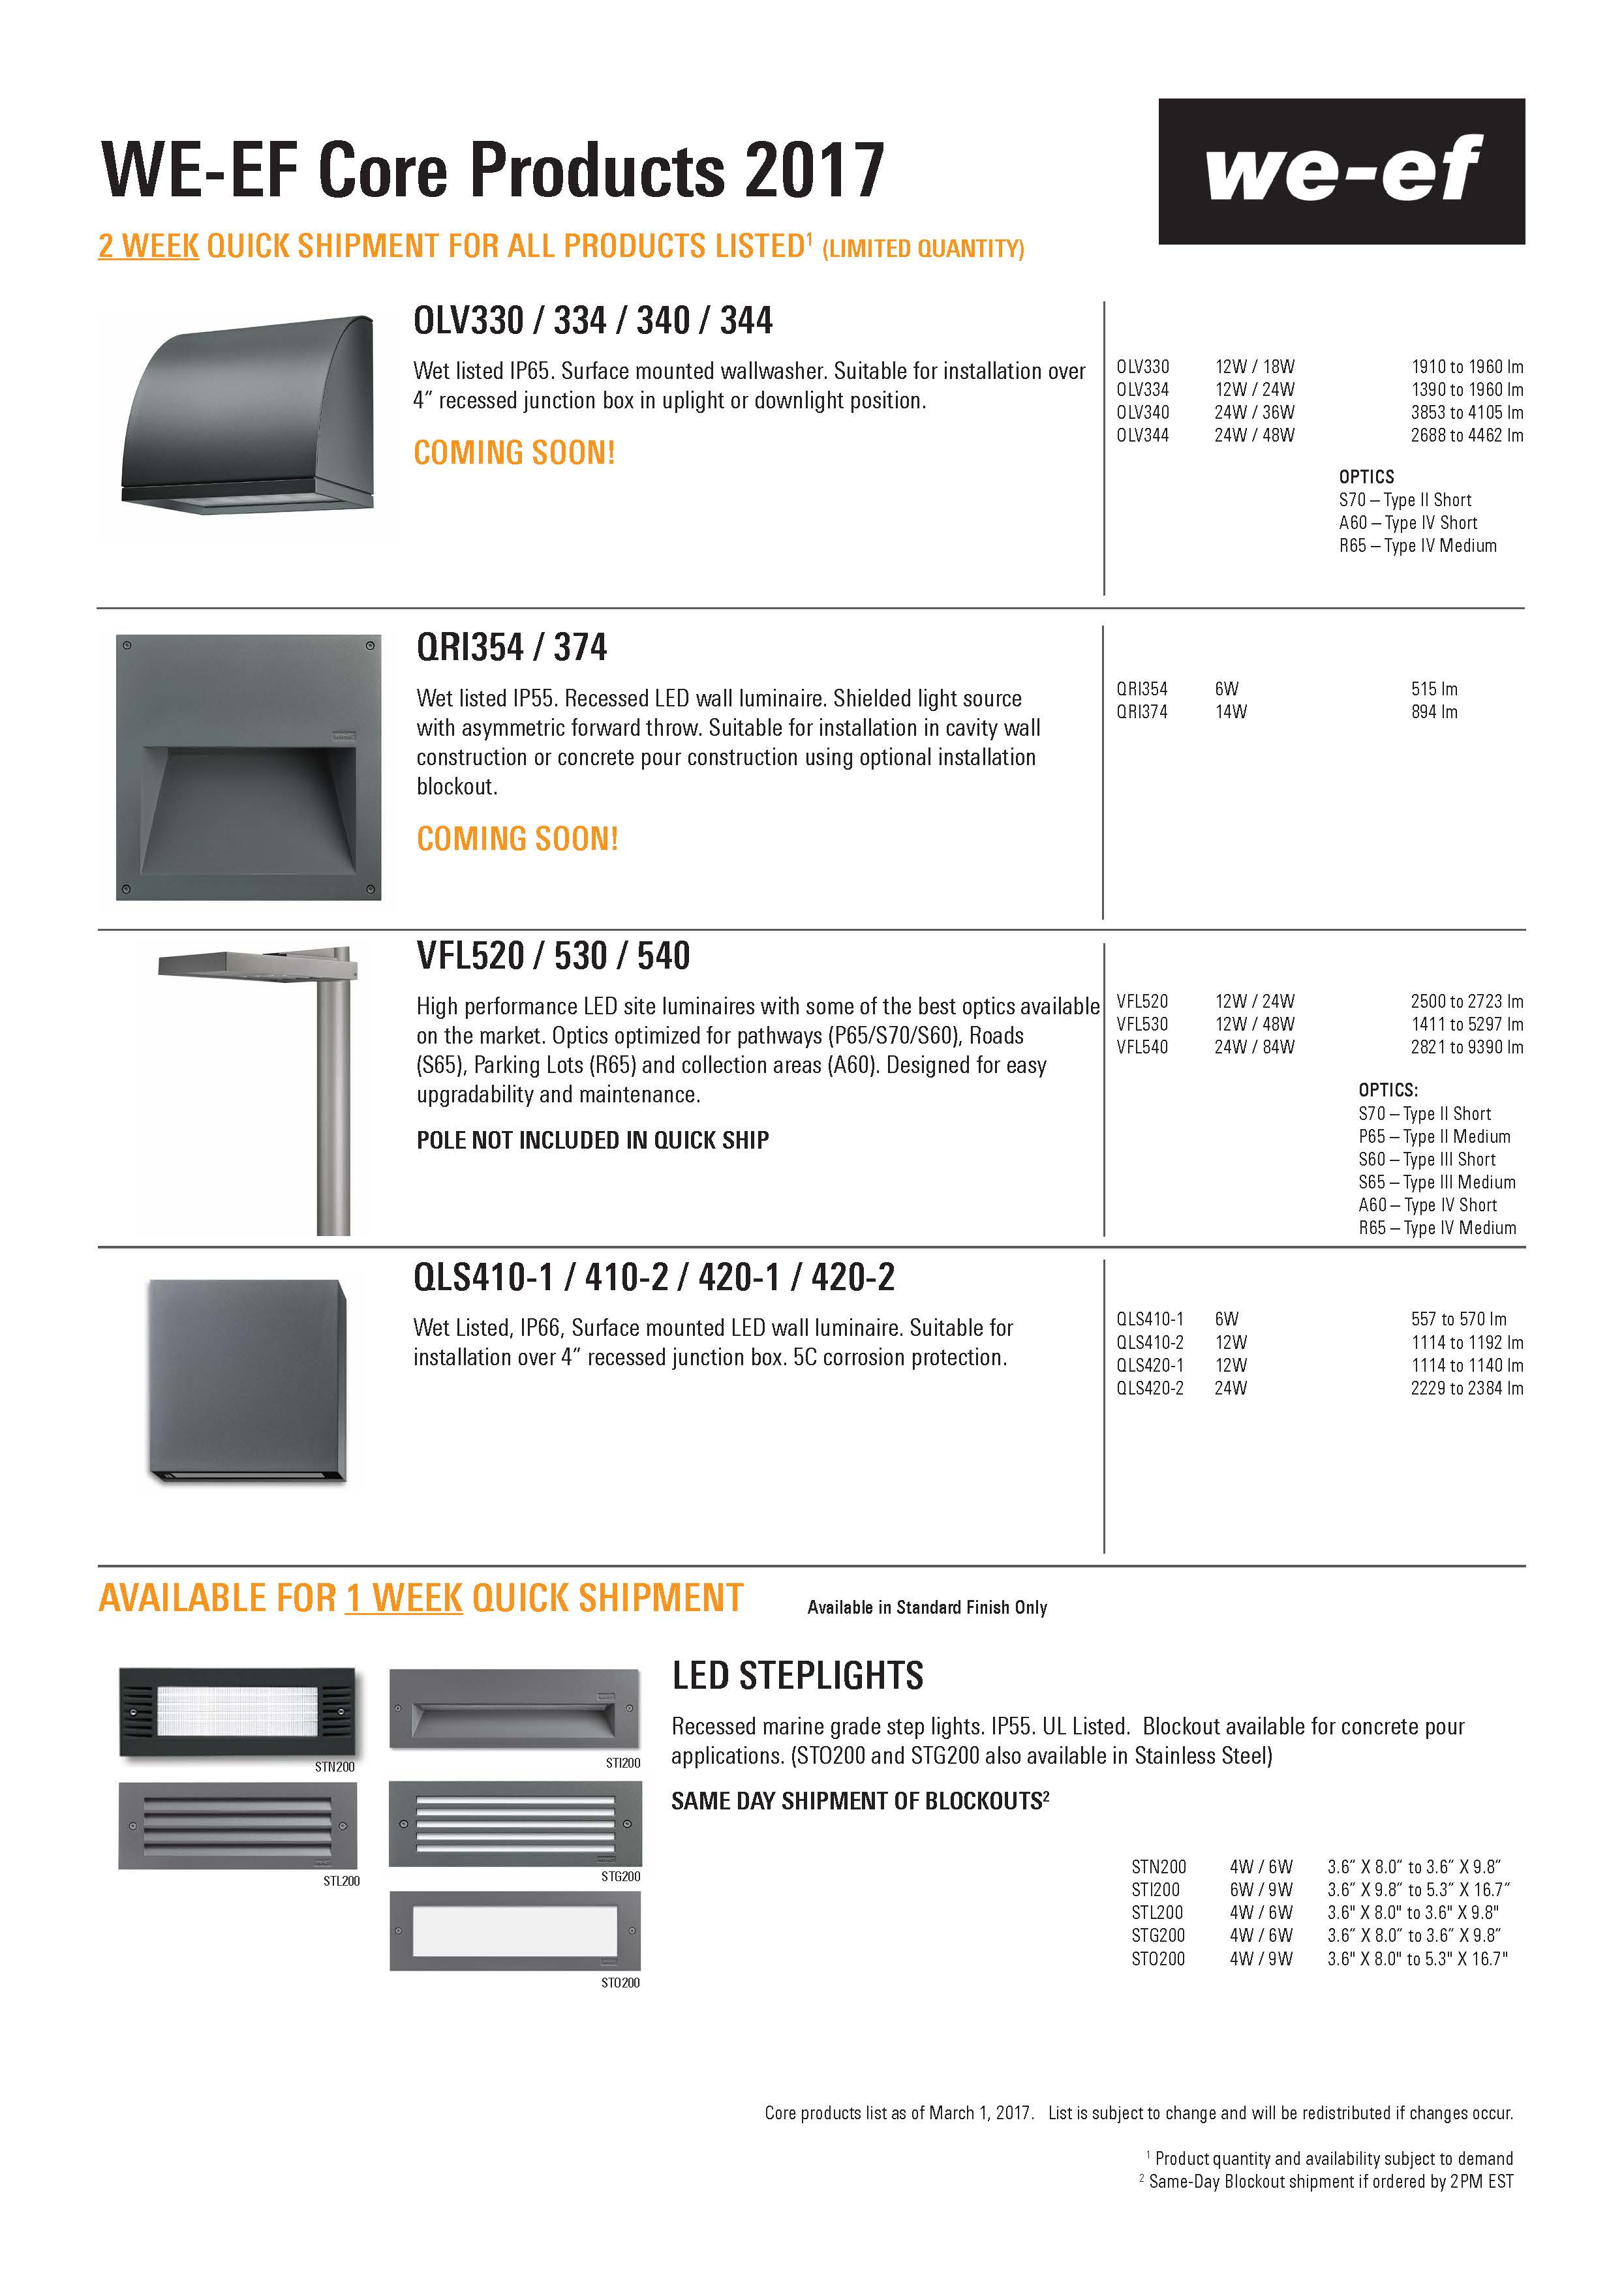 2017 Core Products_wopricing_final_Page_2